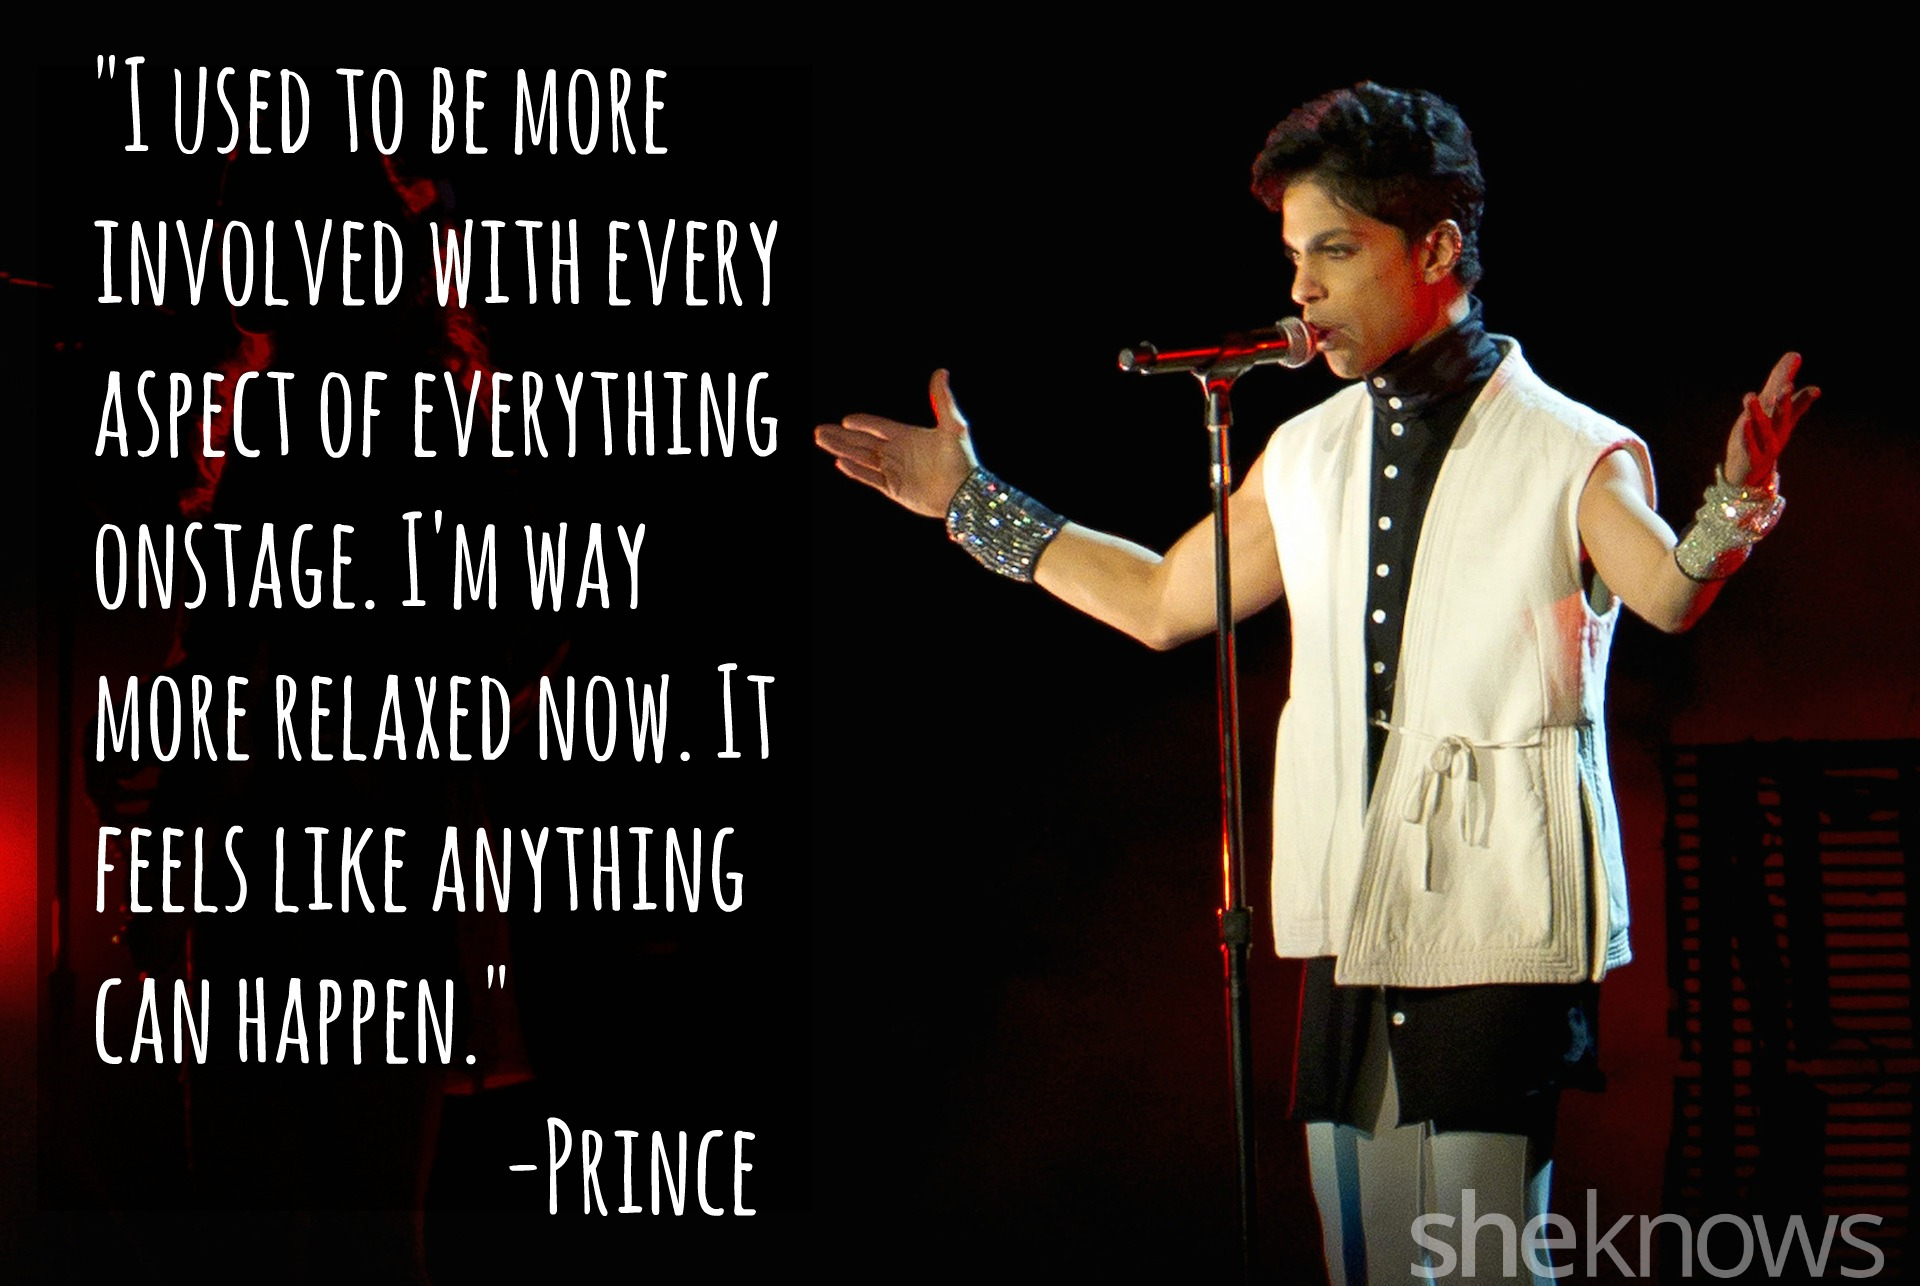 Remembering Prince On His Birthday With His Most Moving Song Lyrics